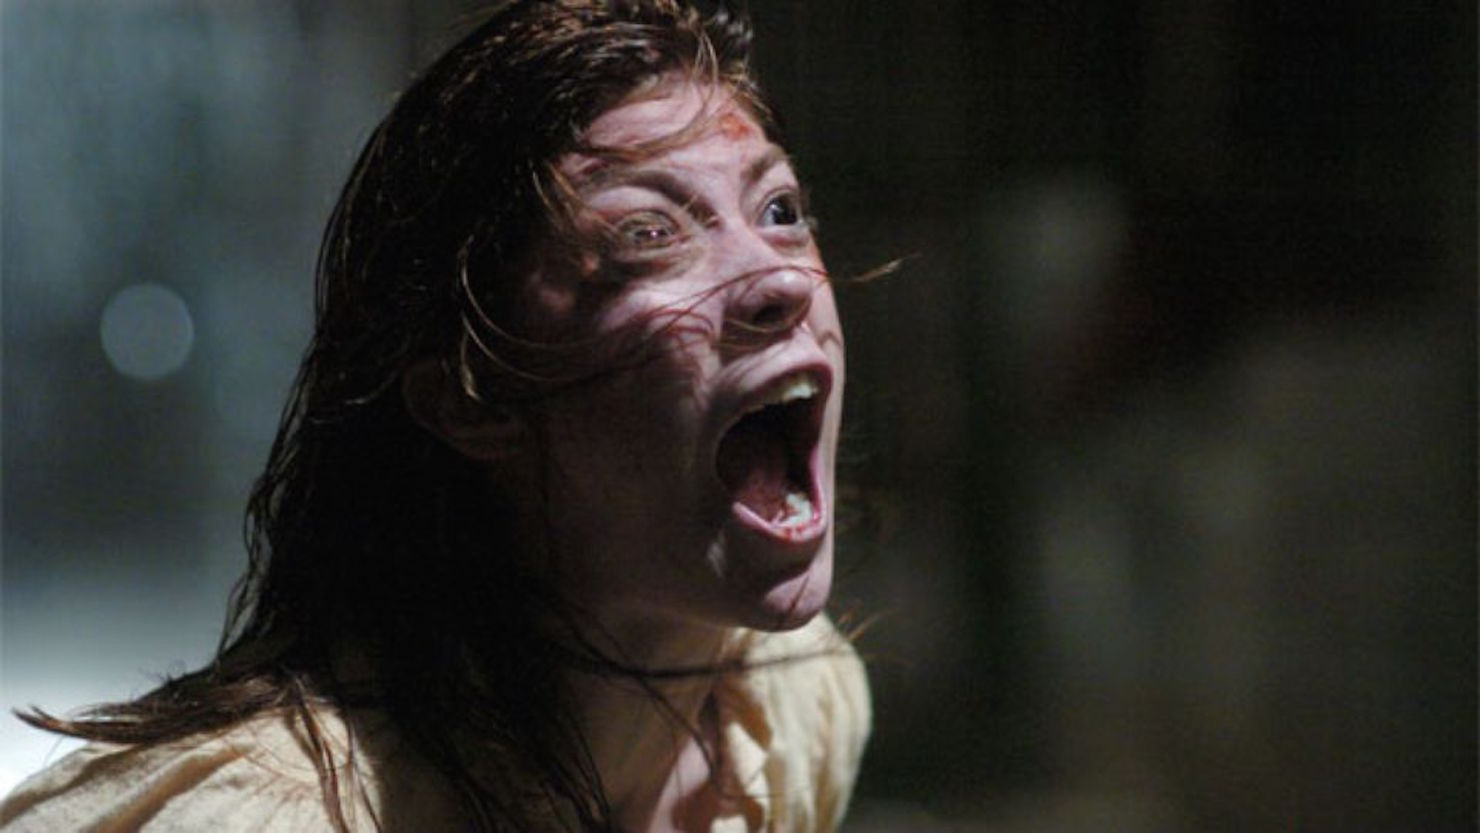 A possessed Jennifer Carpenter in The Exorcism of Emily Rose (2005)